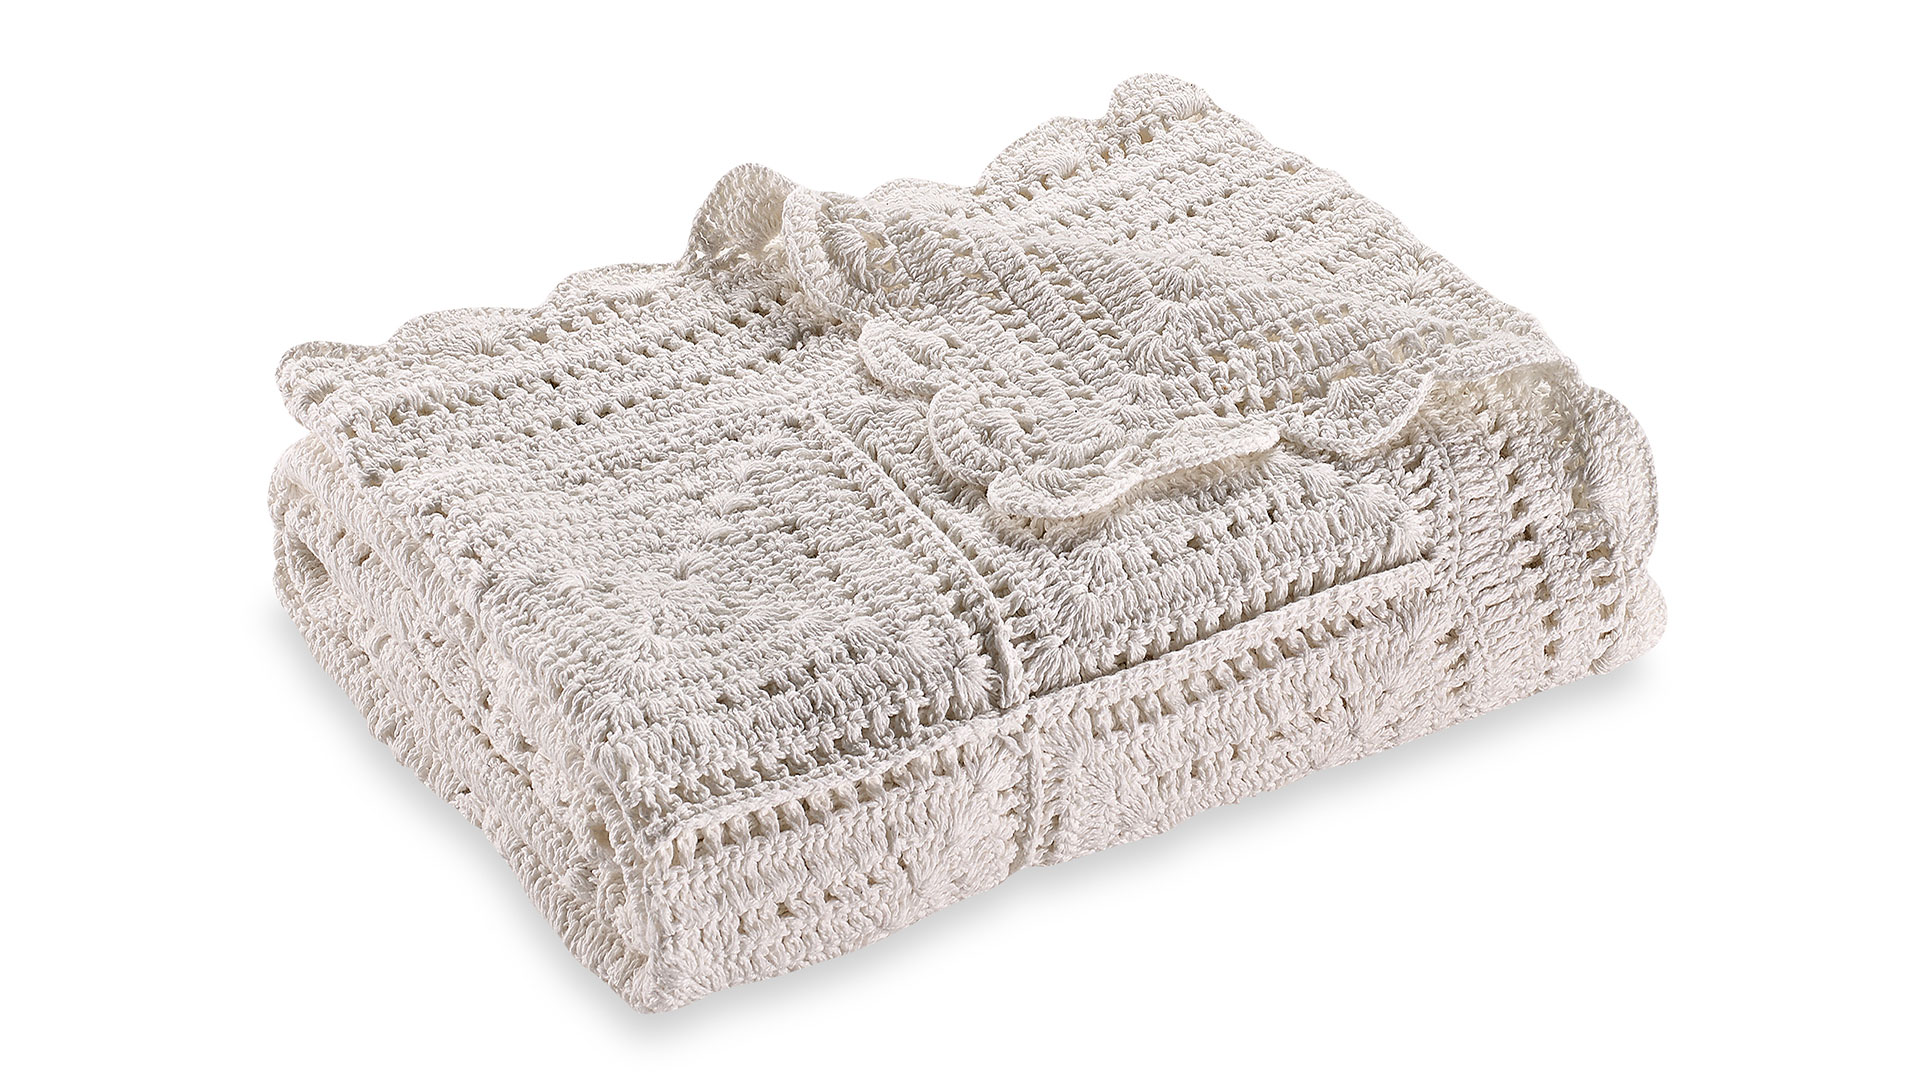 Bed Bath & Beyond Bee & Willow Throw Blanket